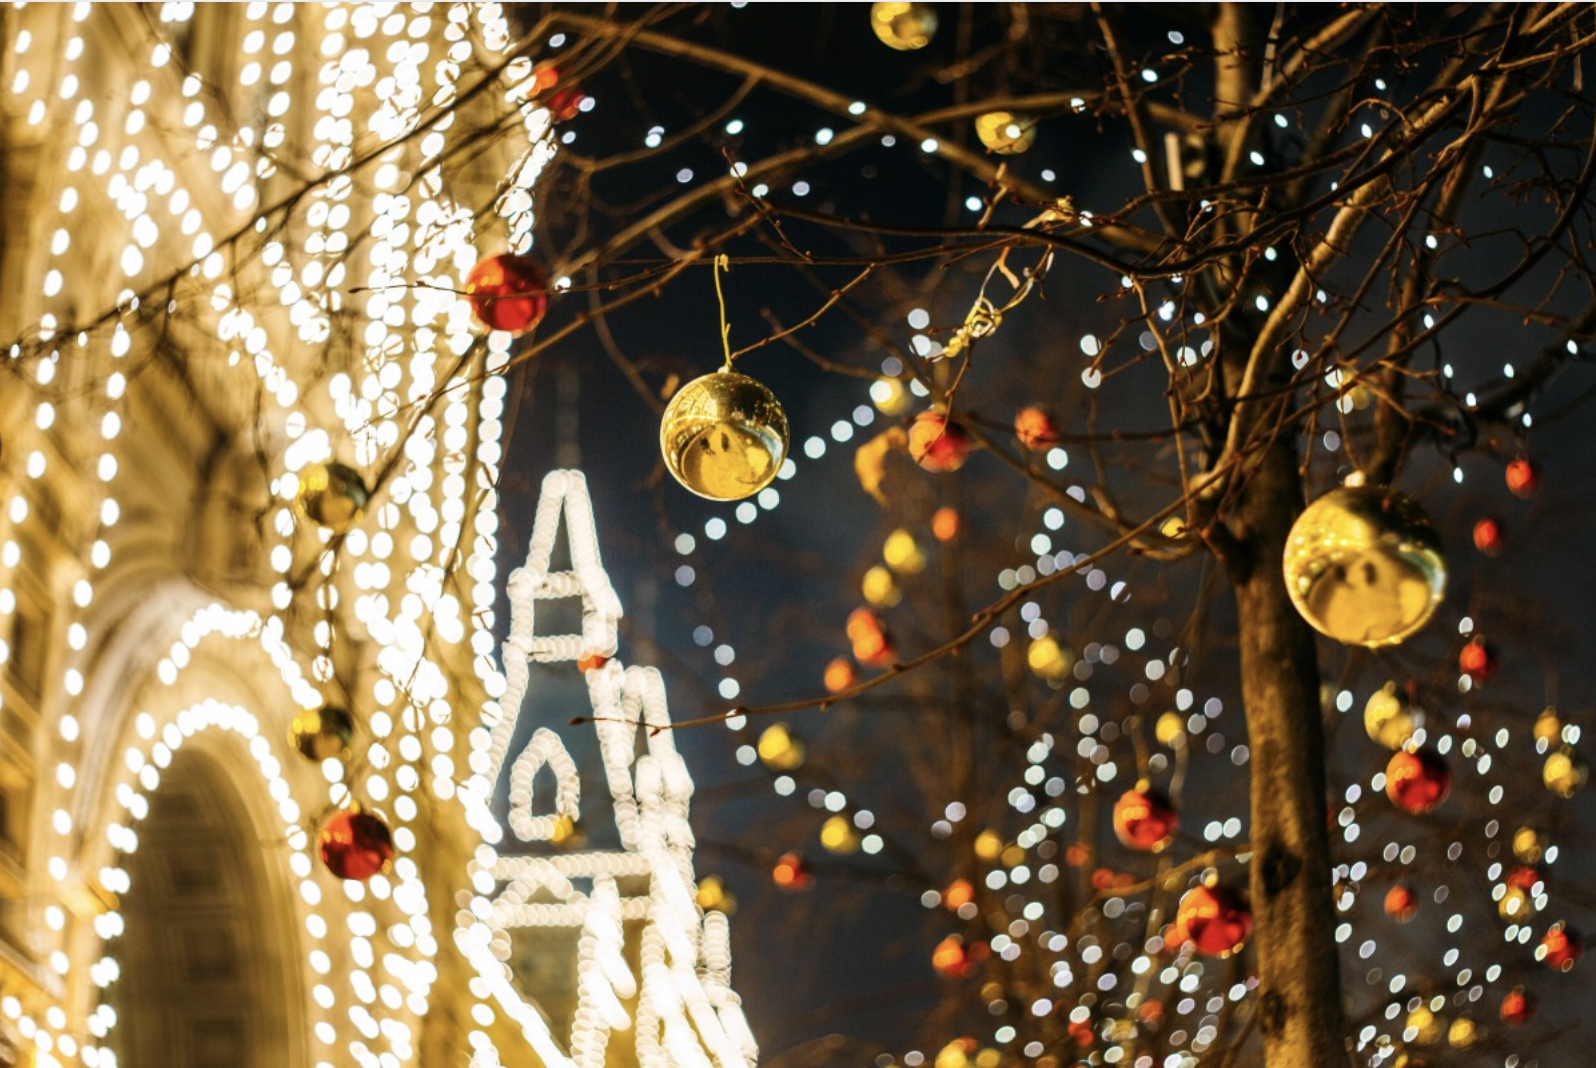 Christmas lights in a town